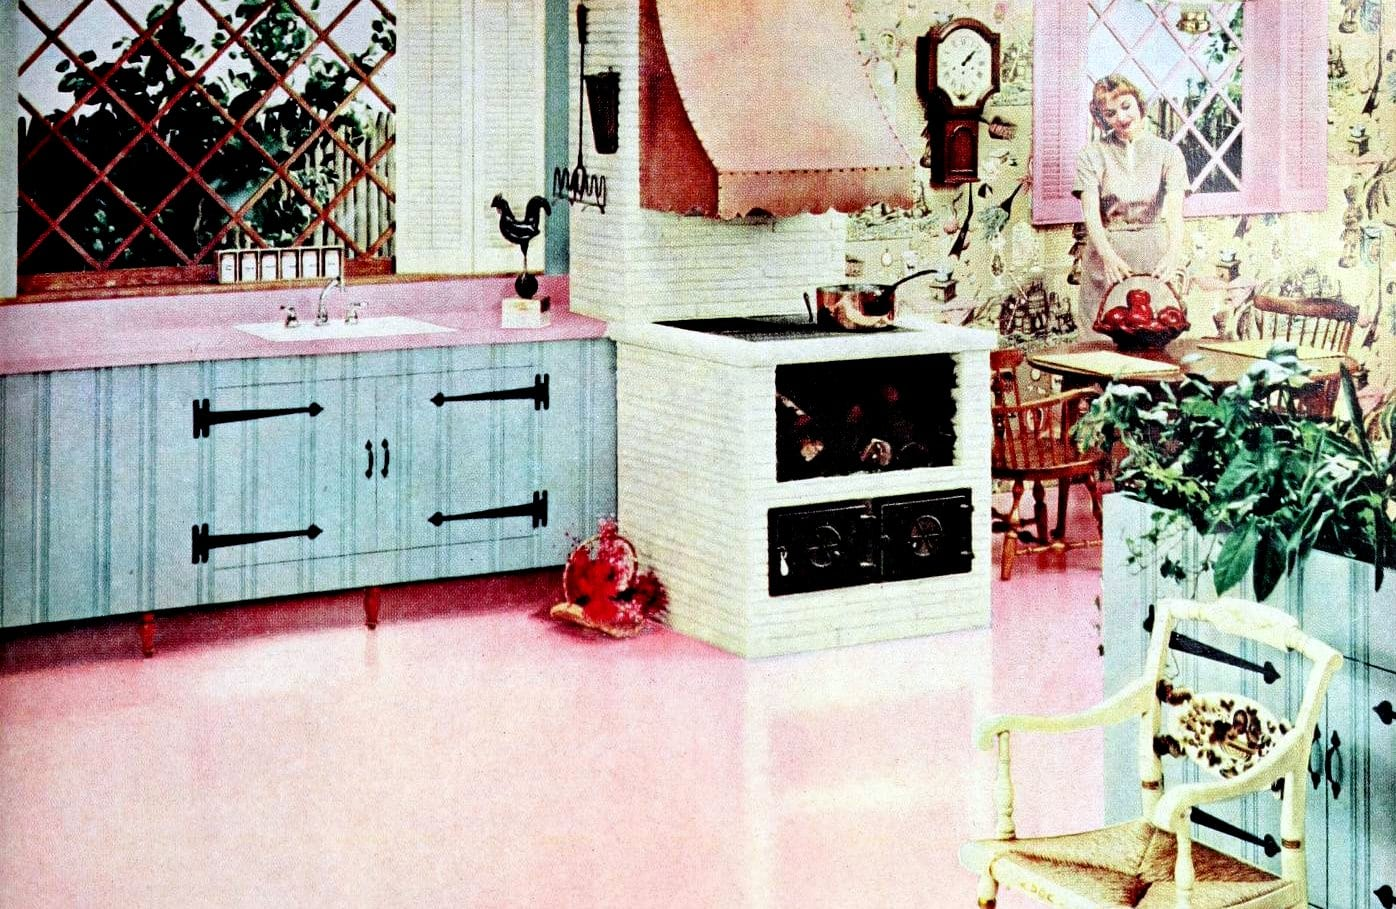 A retro pink and blue fifties kitchen